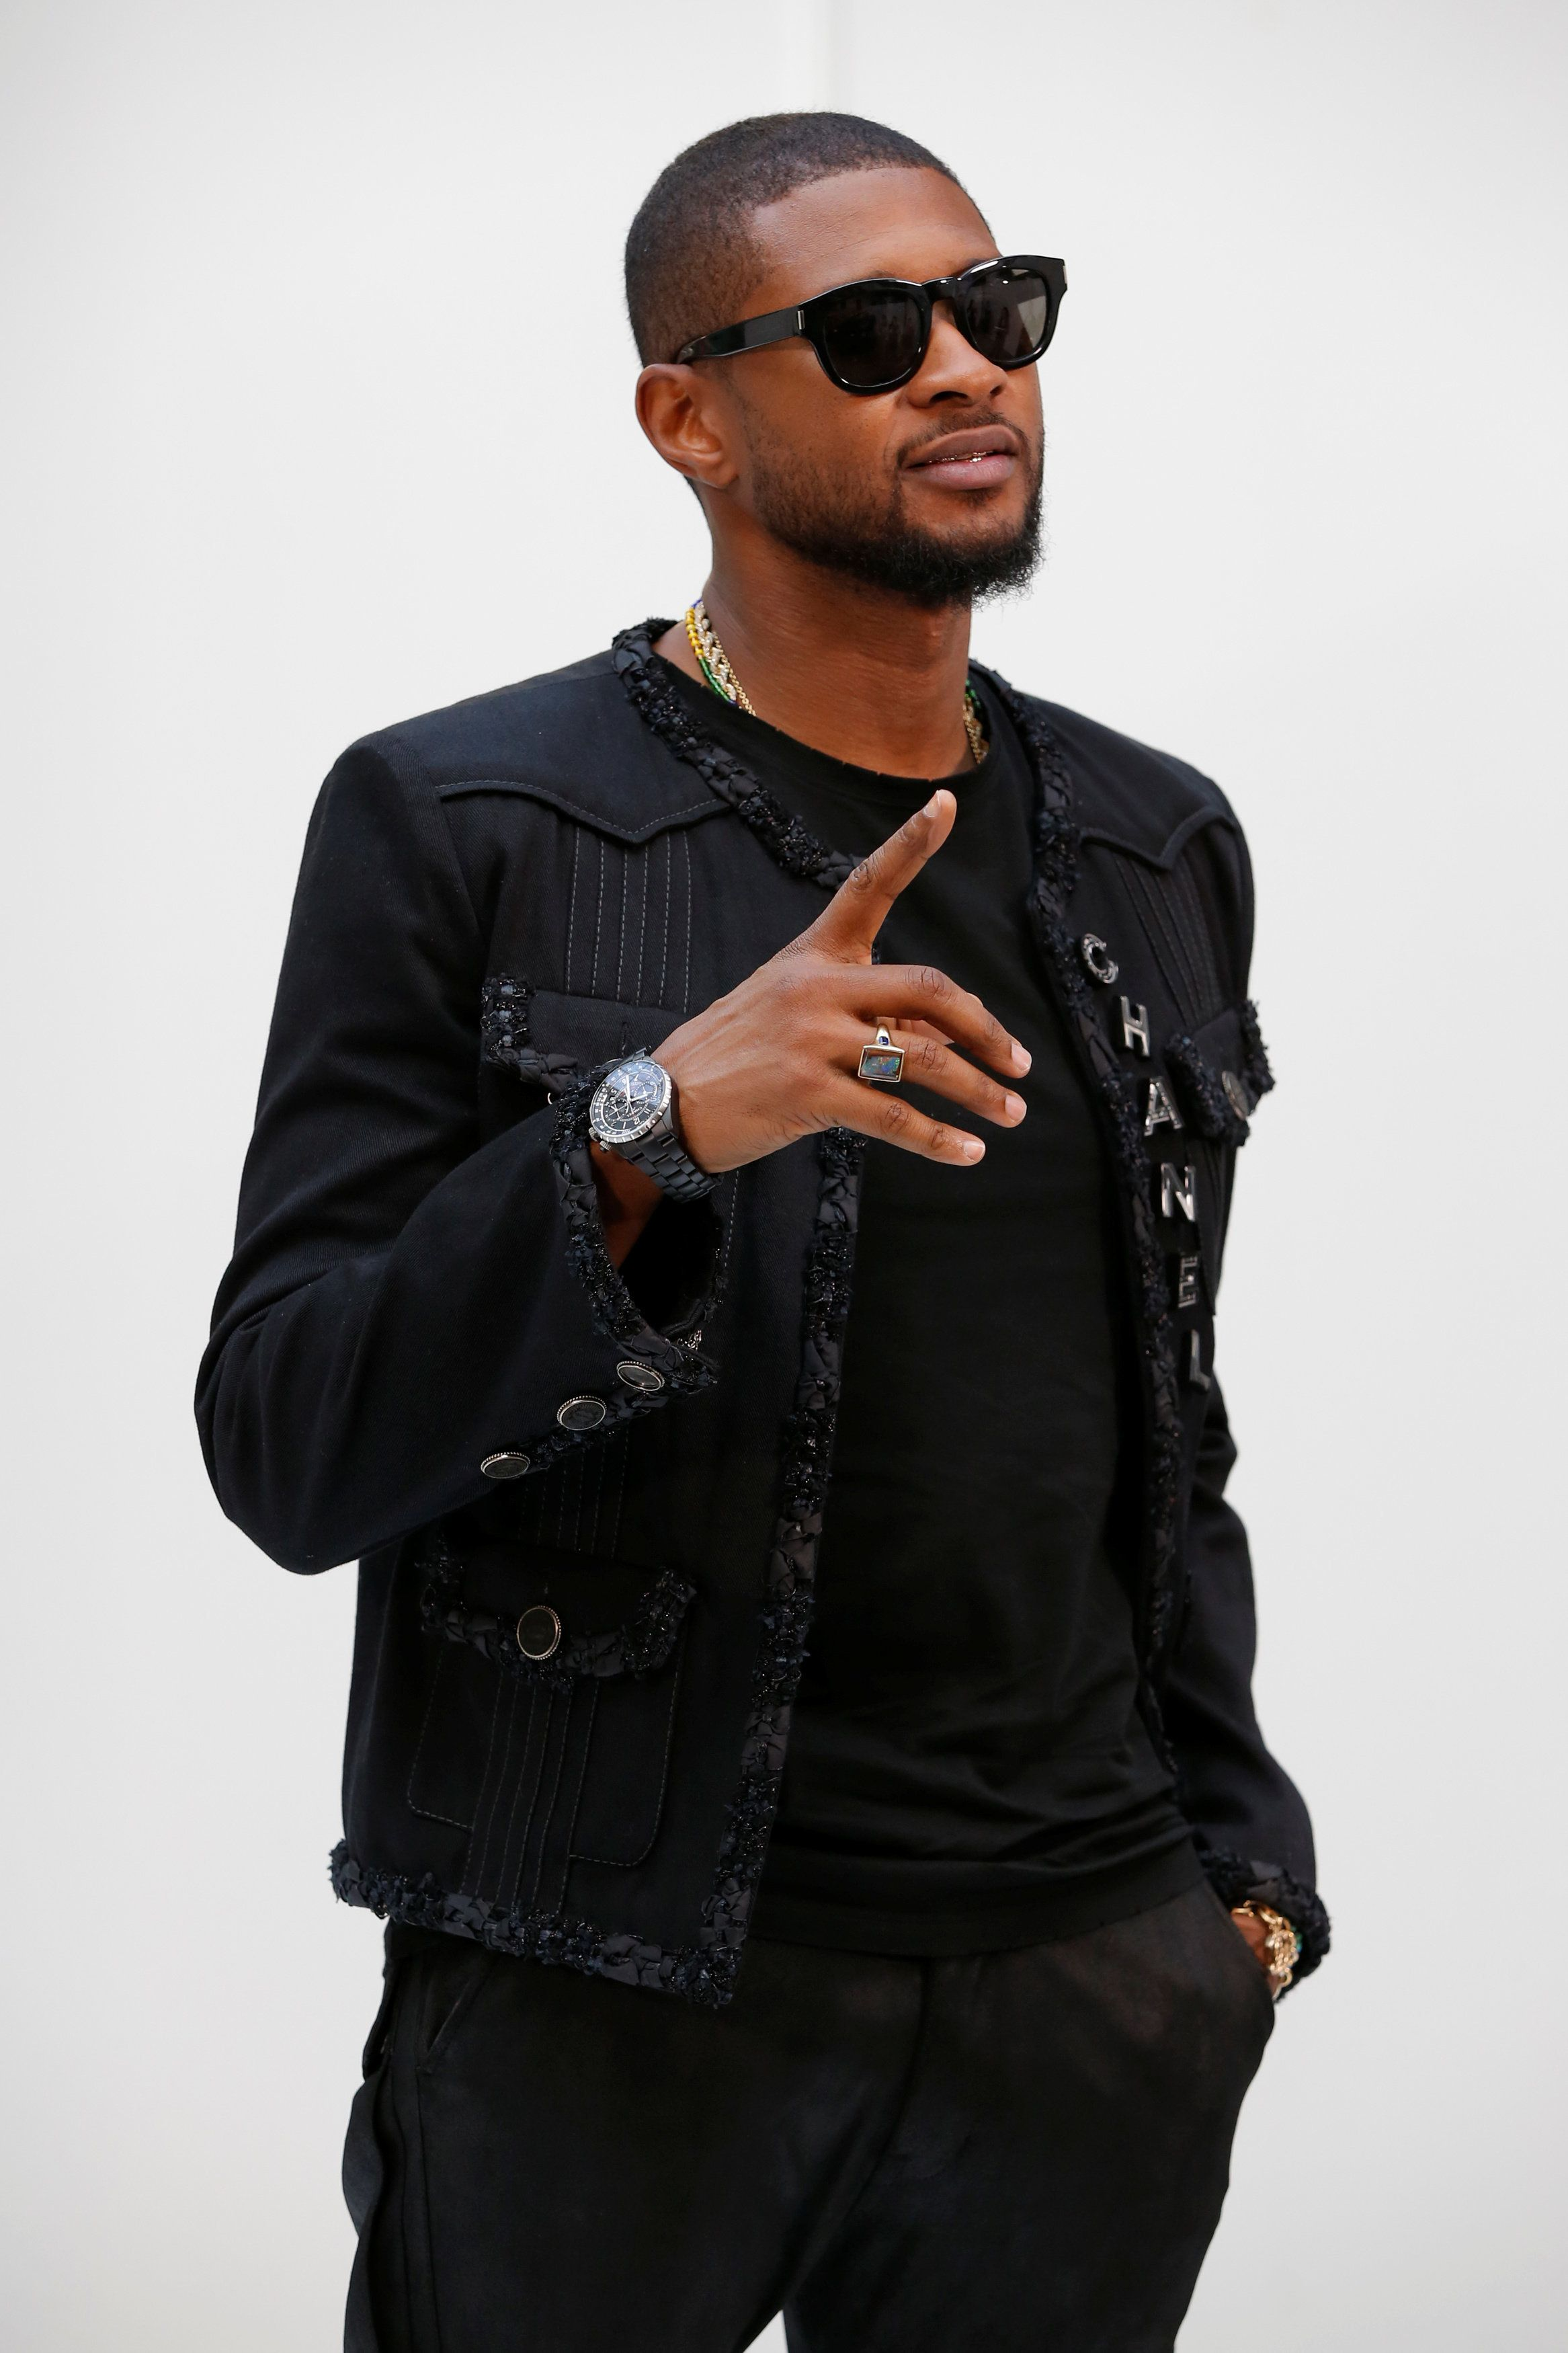 Recording artist Usher poses during a photocall before the Spring/Summer 2017 women's ready-to-wear collection for fashion house Chanel during Fashion Week in Paris, France October 4, 2016. REUTERS/Gonzalo Fuentes